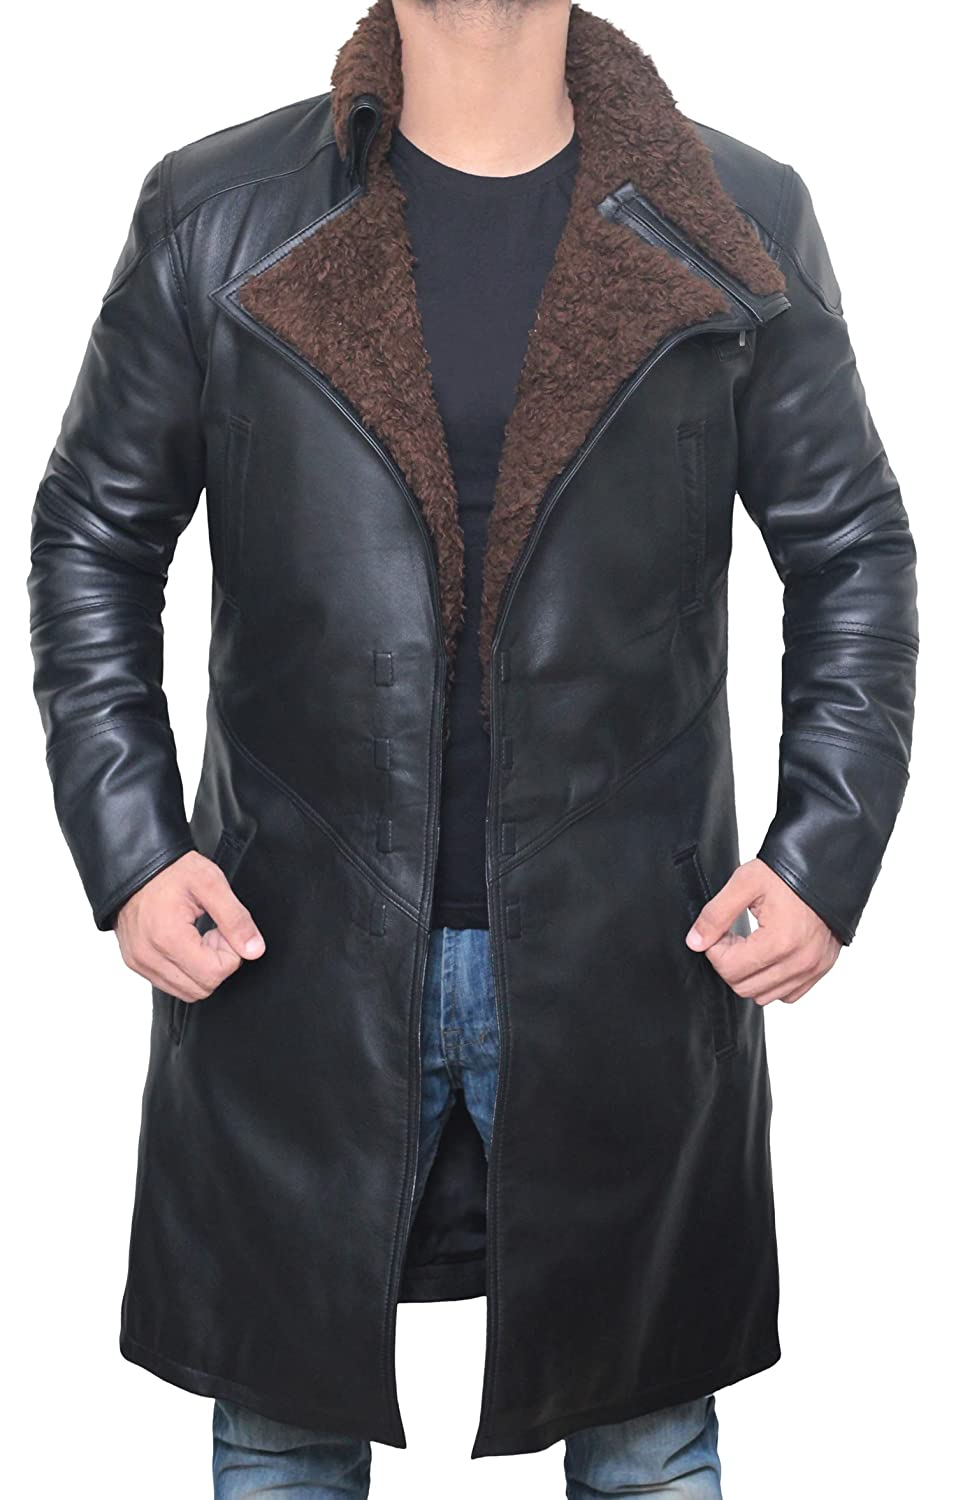 Decrum Black Shearling Leather Trench Coat Mens 4501790-PP